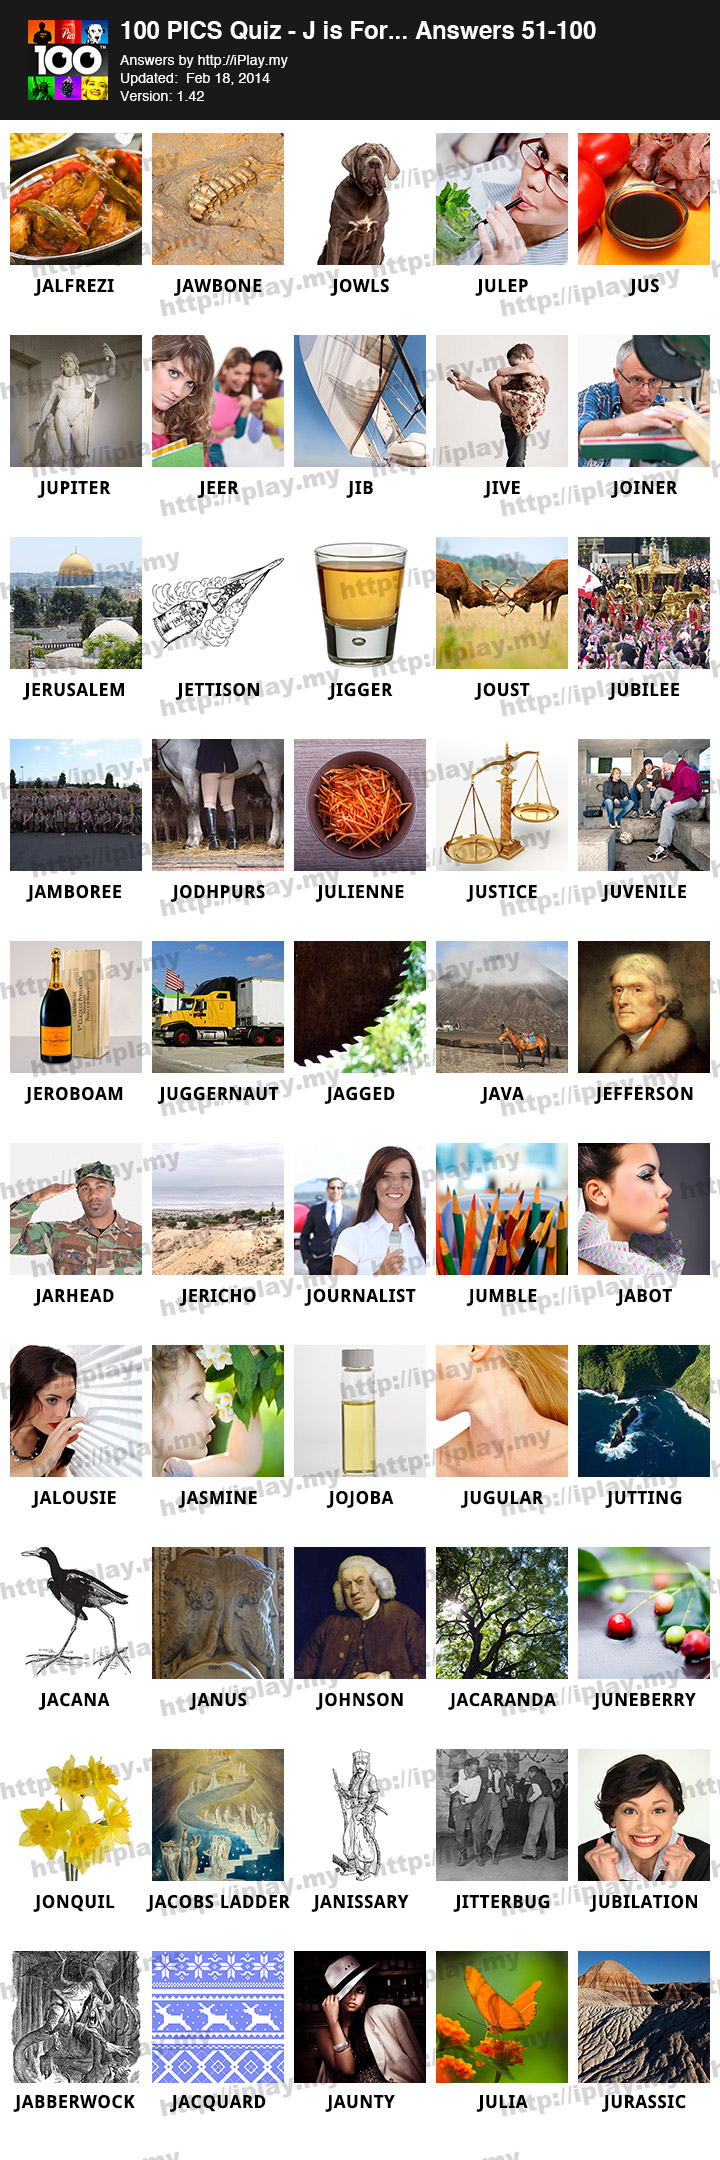 100 PICS J is for Answers | iPlay my